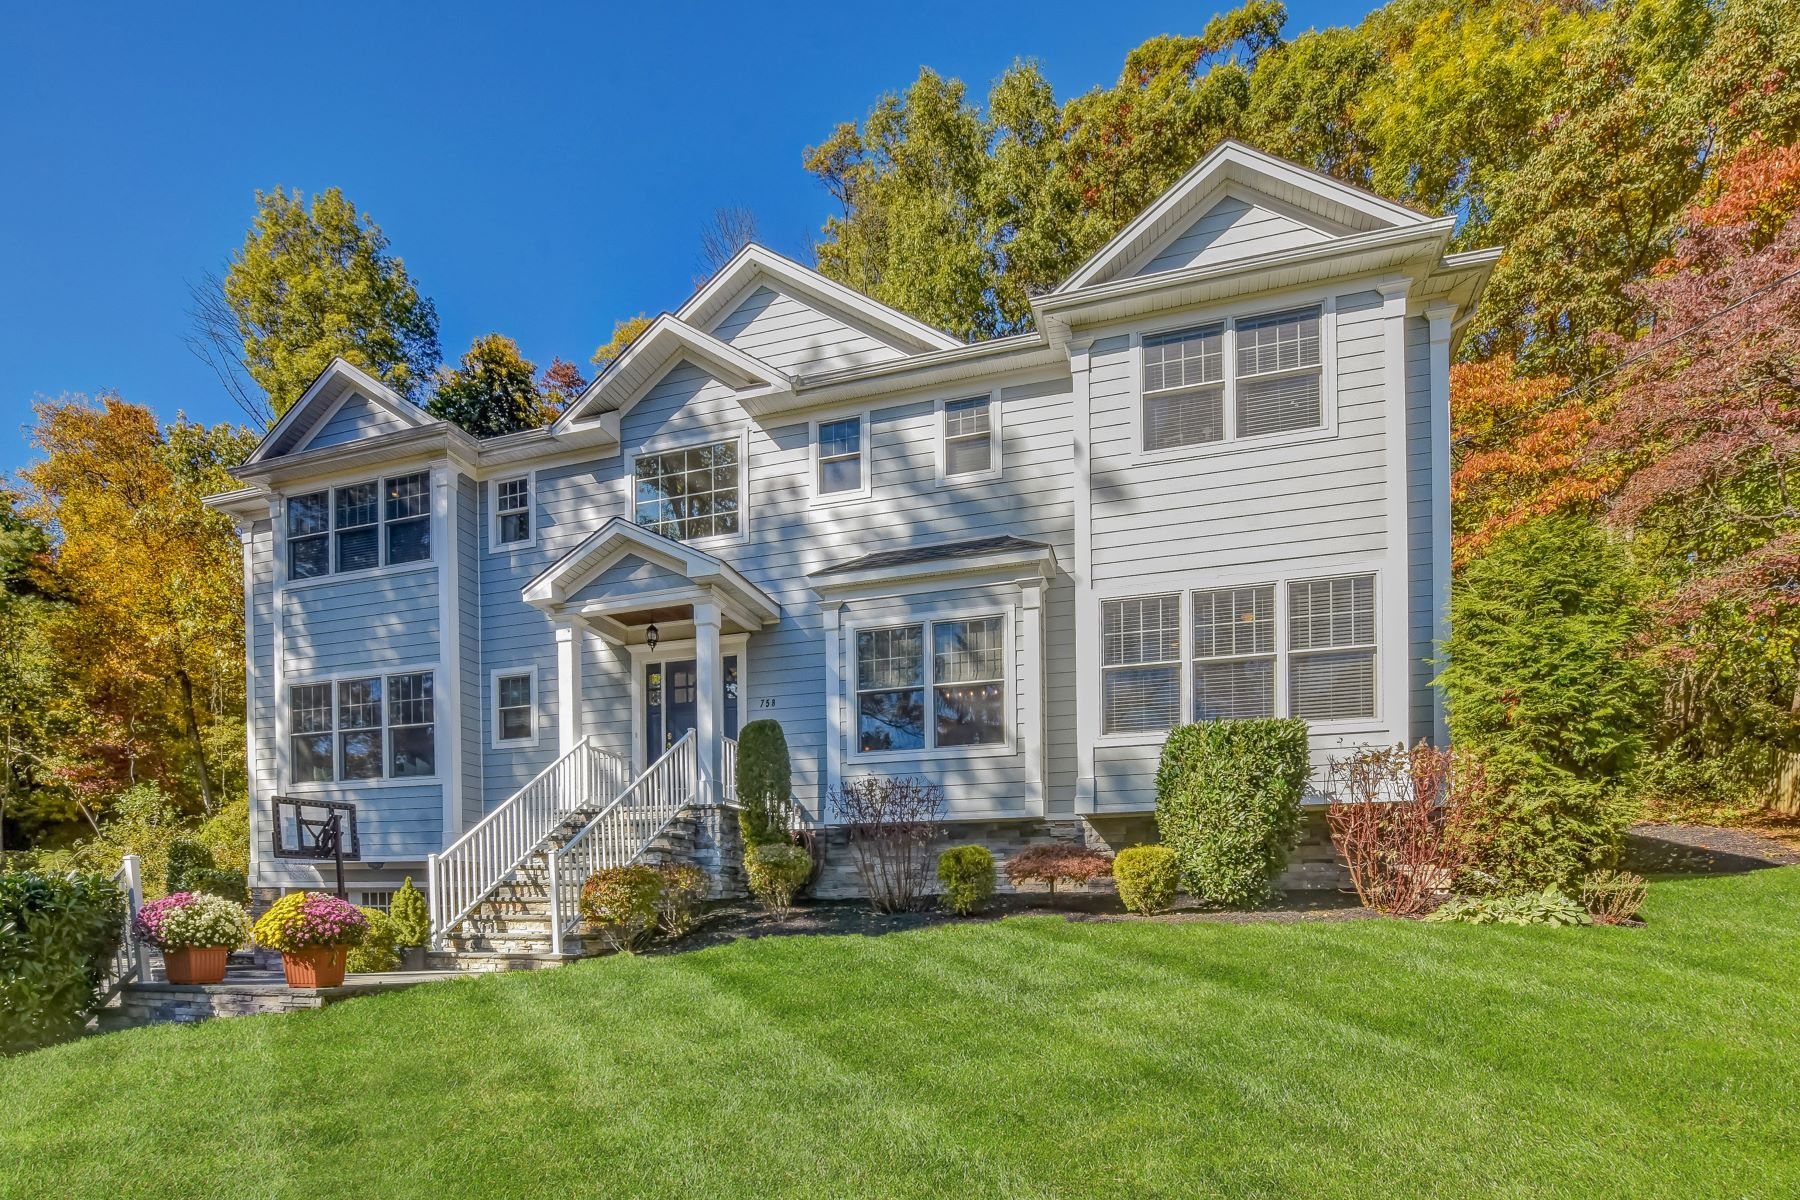 Single Family Homes for Sale at Beautiful Center Hall Colonial 758 River Road Chatham, New Jersey 07928 United States